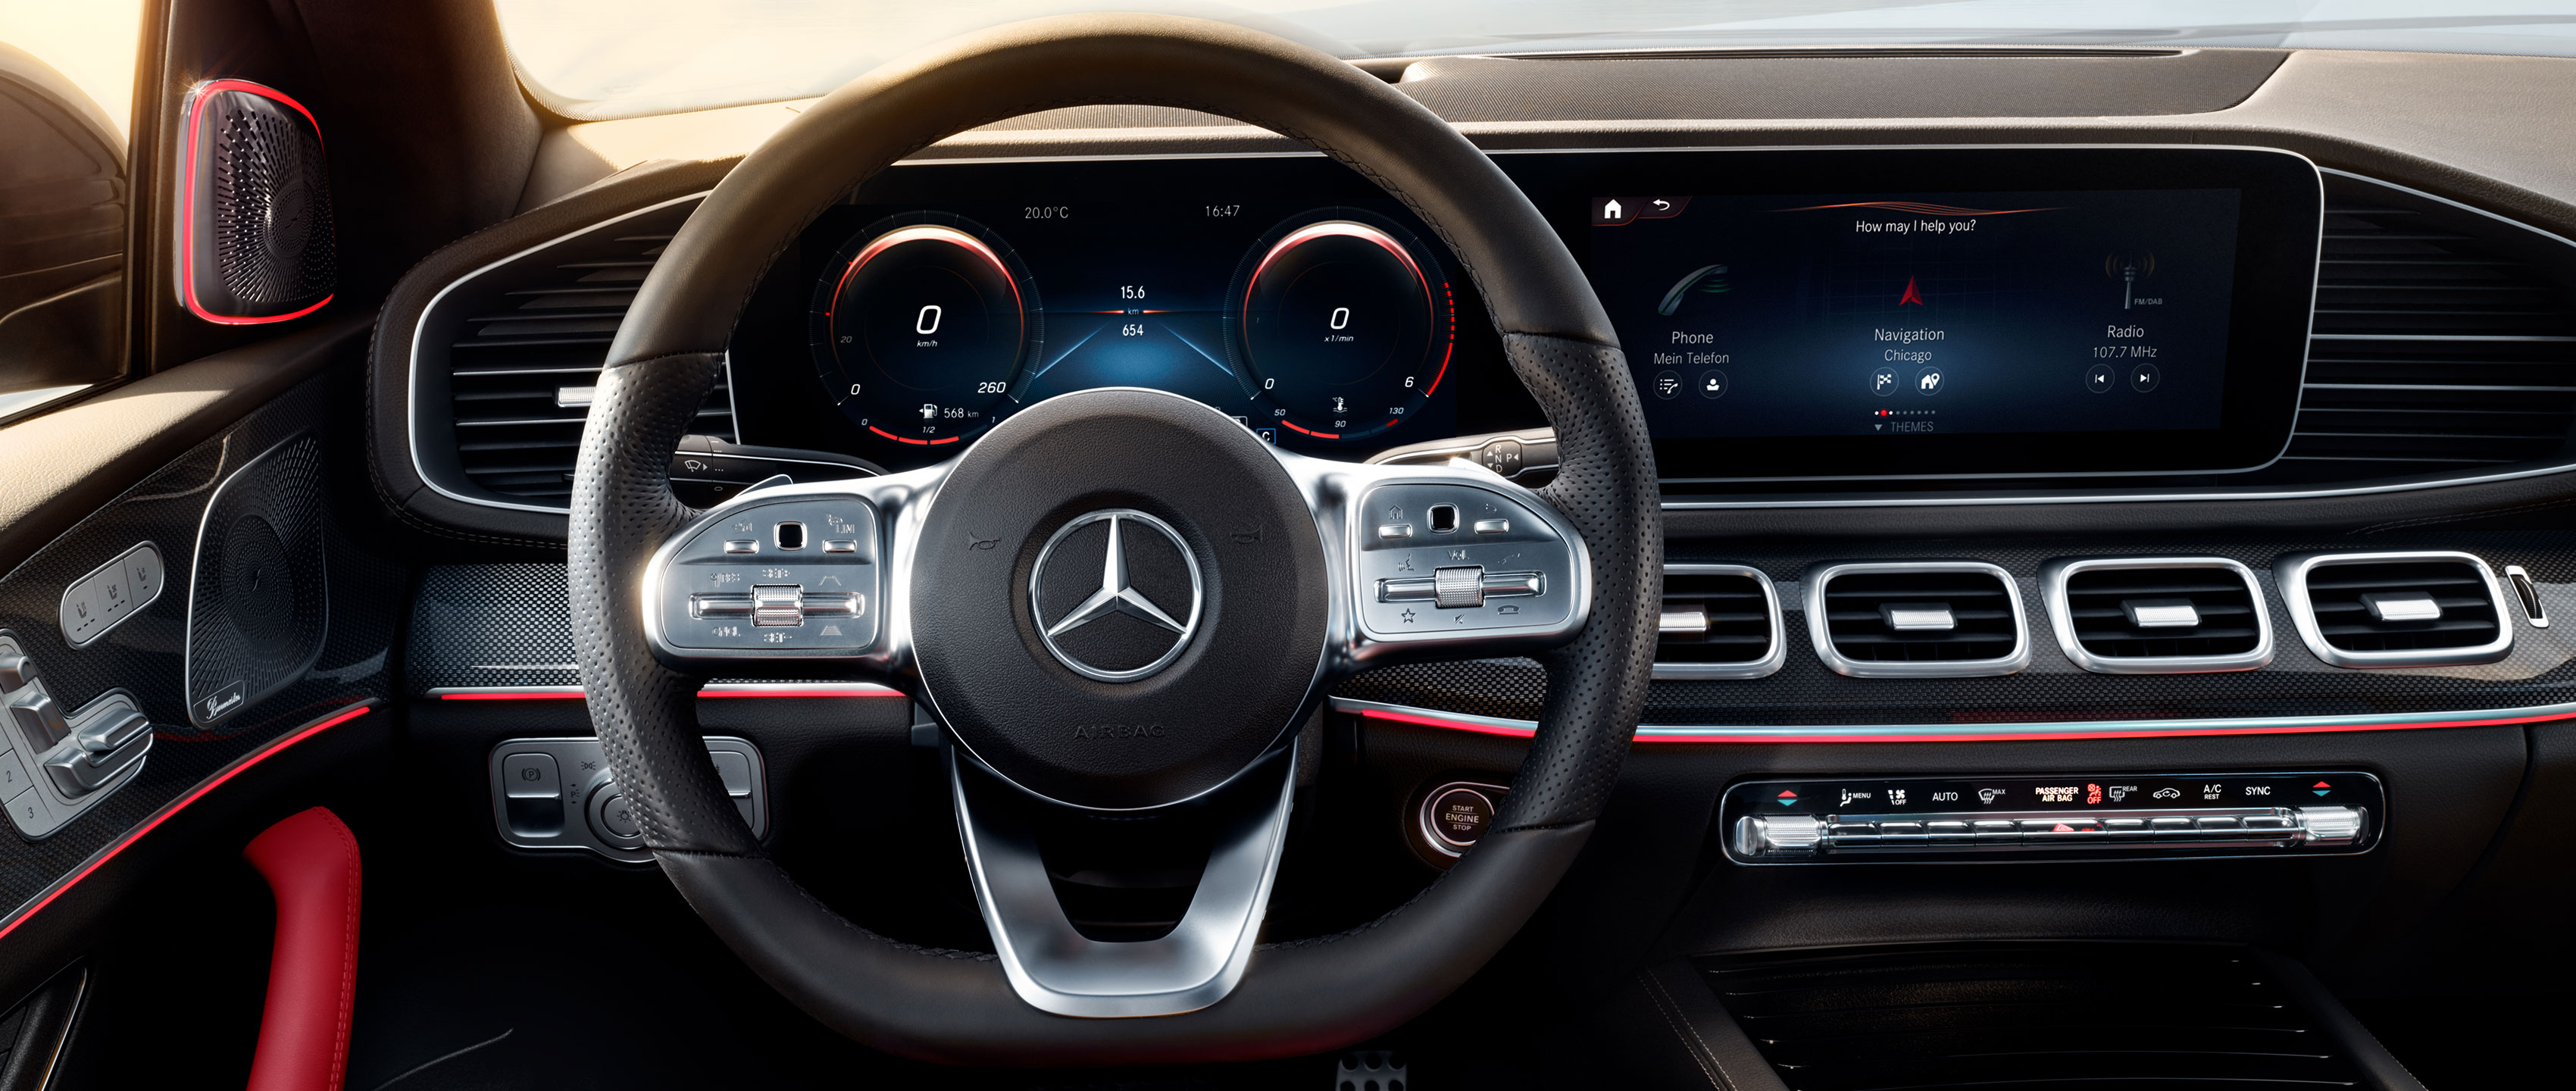 The New Mercedes Benz Gle Coupe 2020 Outside Suv Inside Likewise